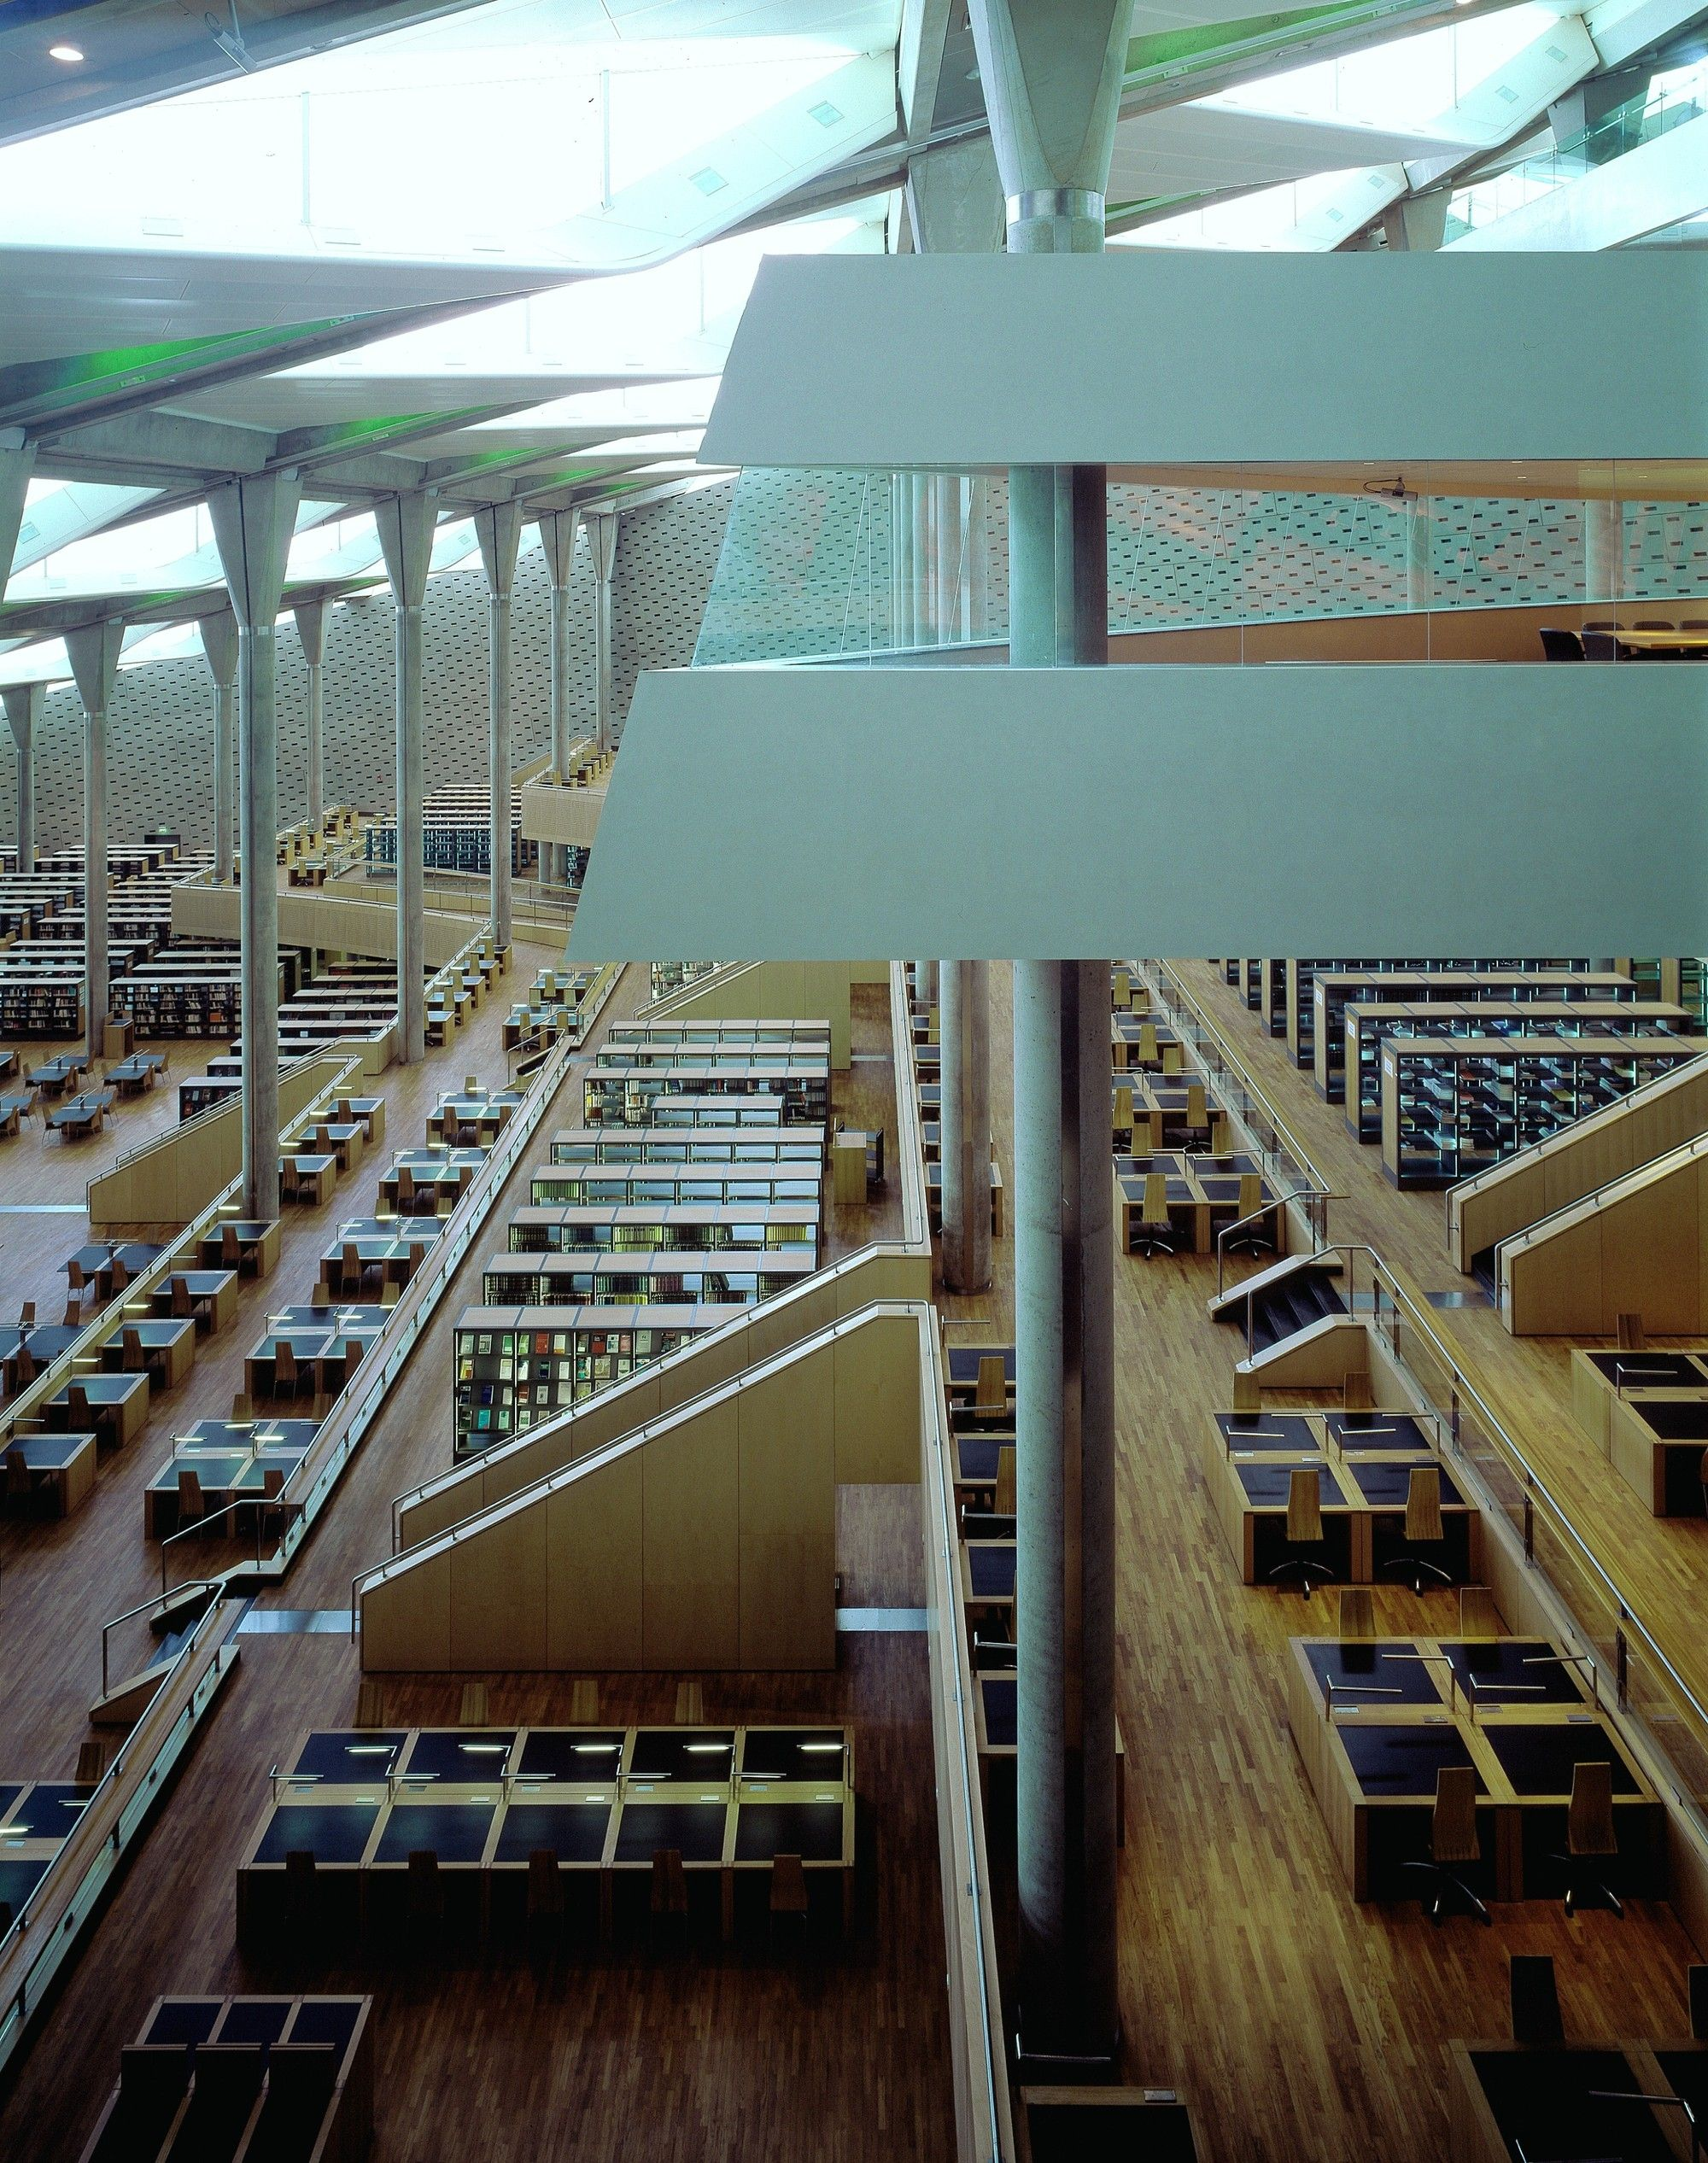 Gallery of ad classics bibliotheca alexandrina sn hetta for Docentes exterior 2015